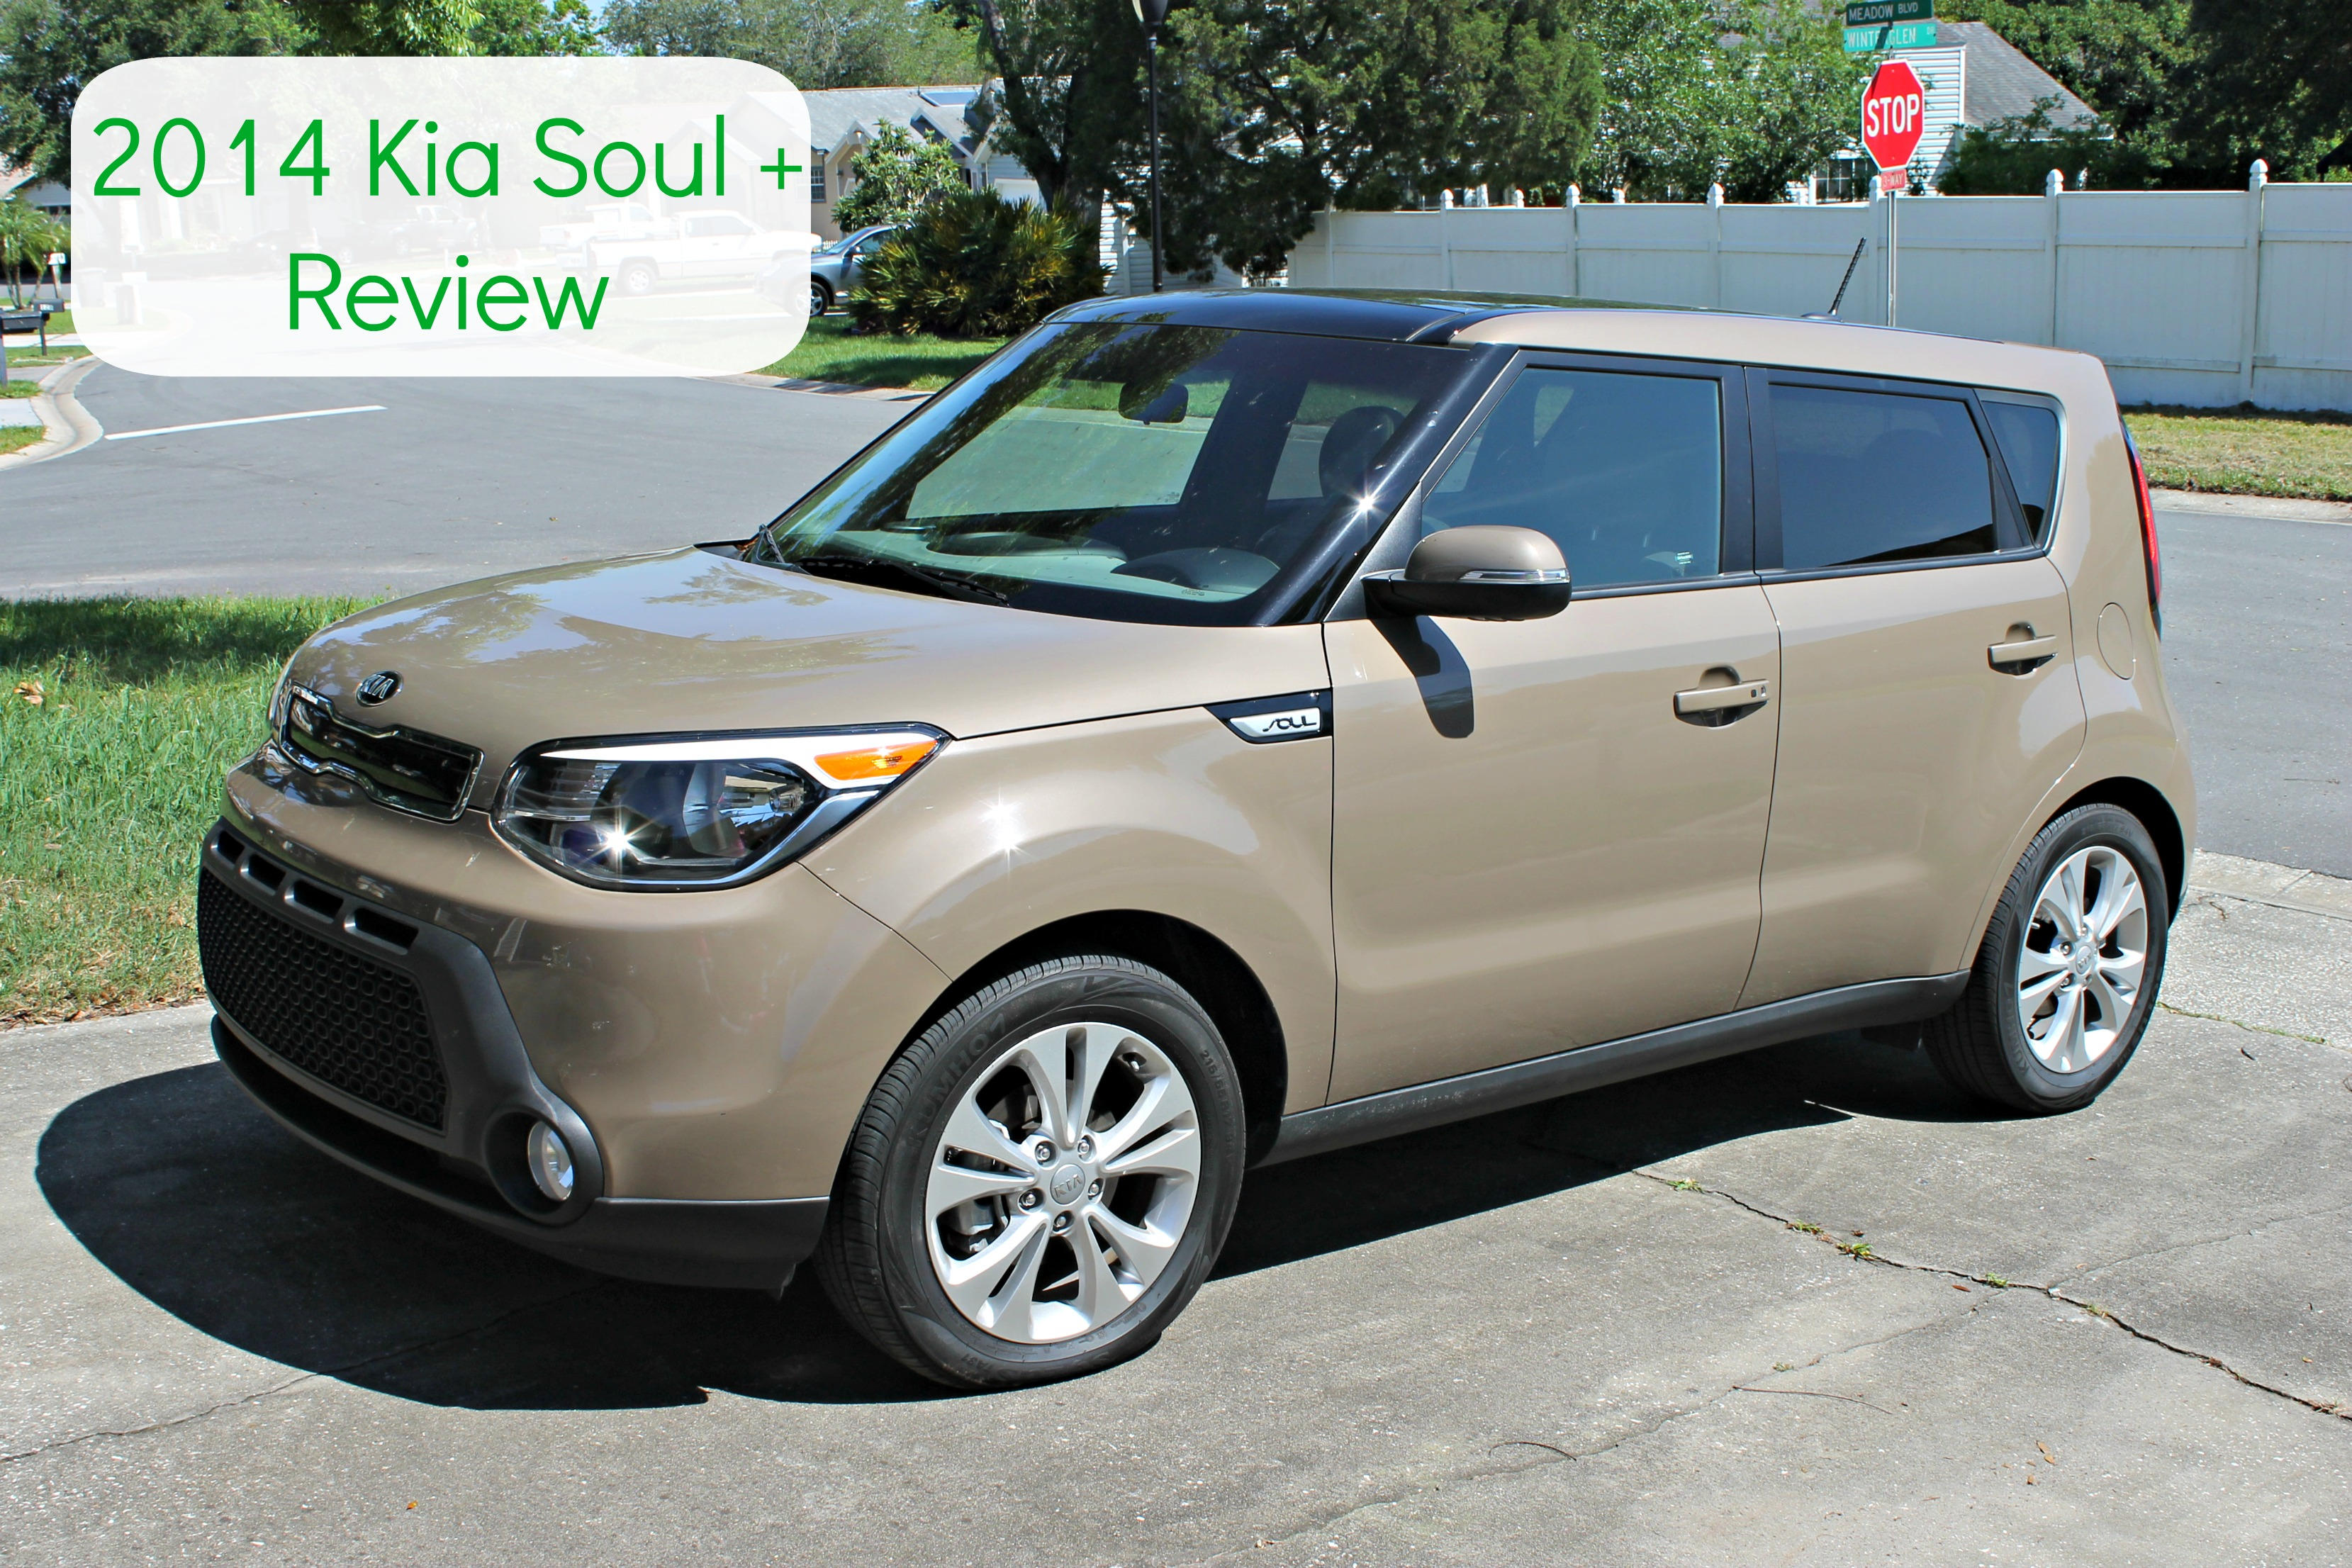 Driving In The 2014 Kia Soul+ | Family Friendly Car Review